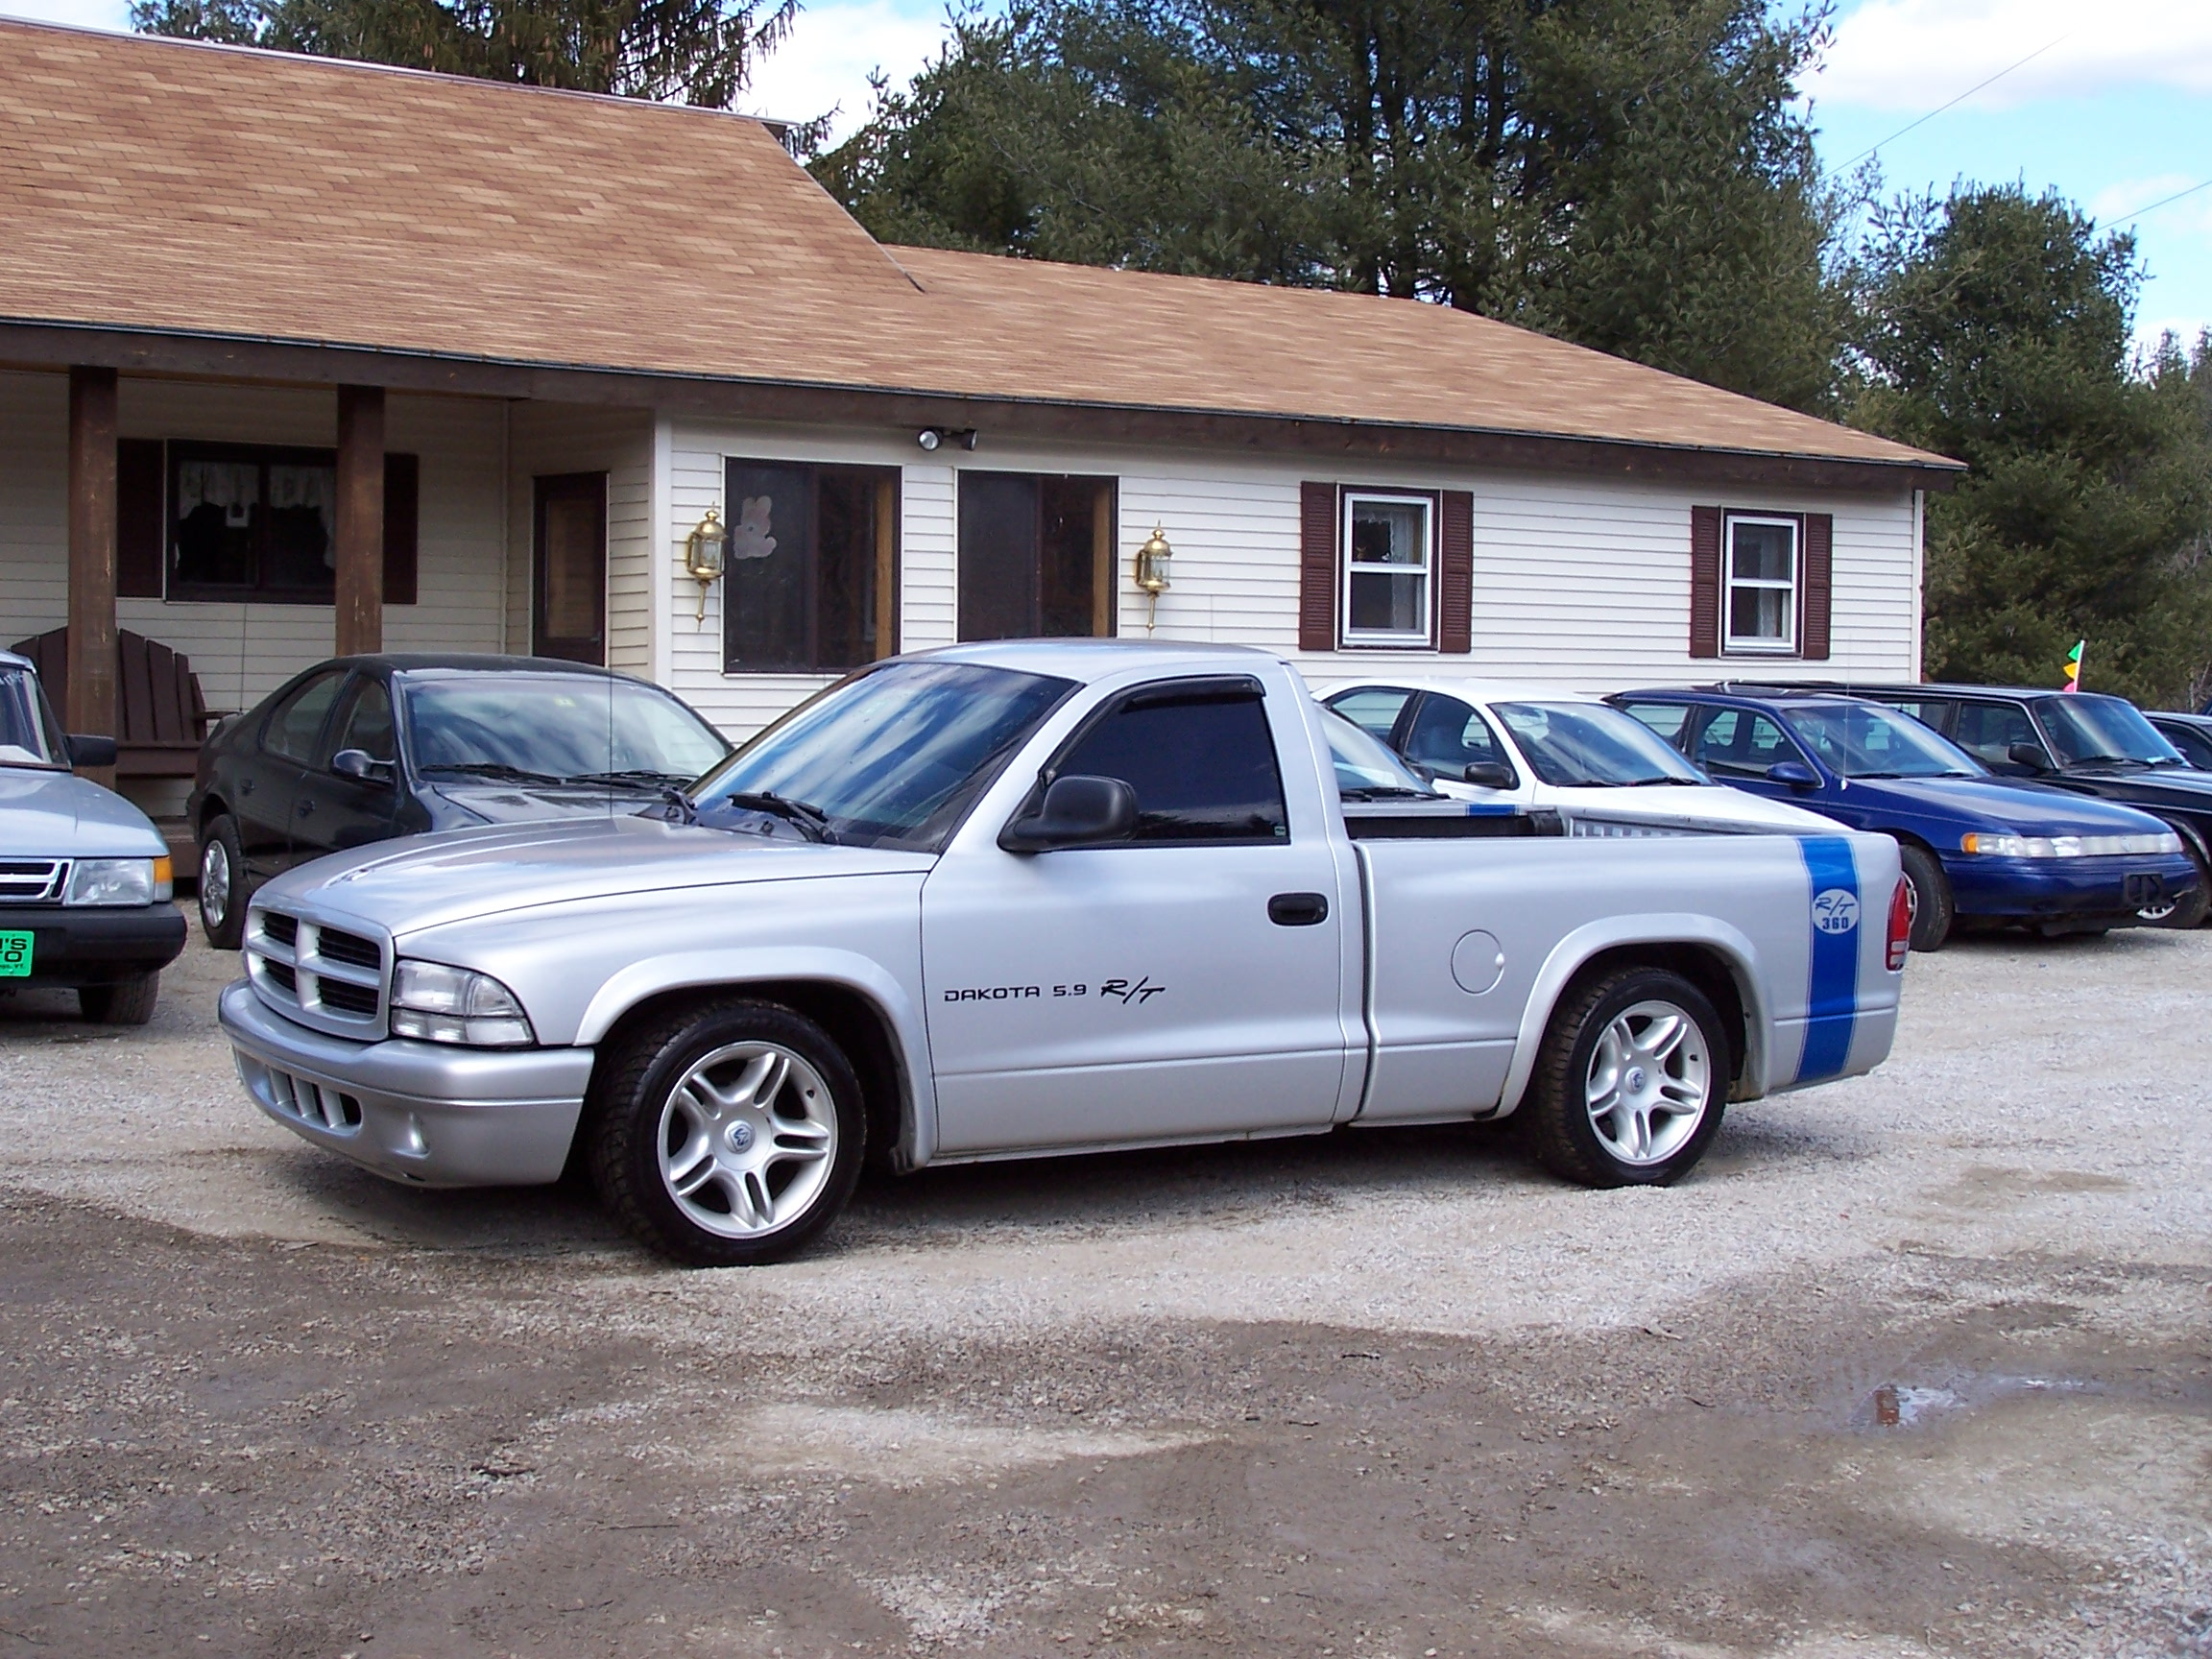 Dodge Dakota 2001 Review Amazing Pictures And Images